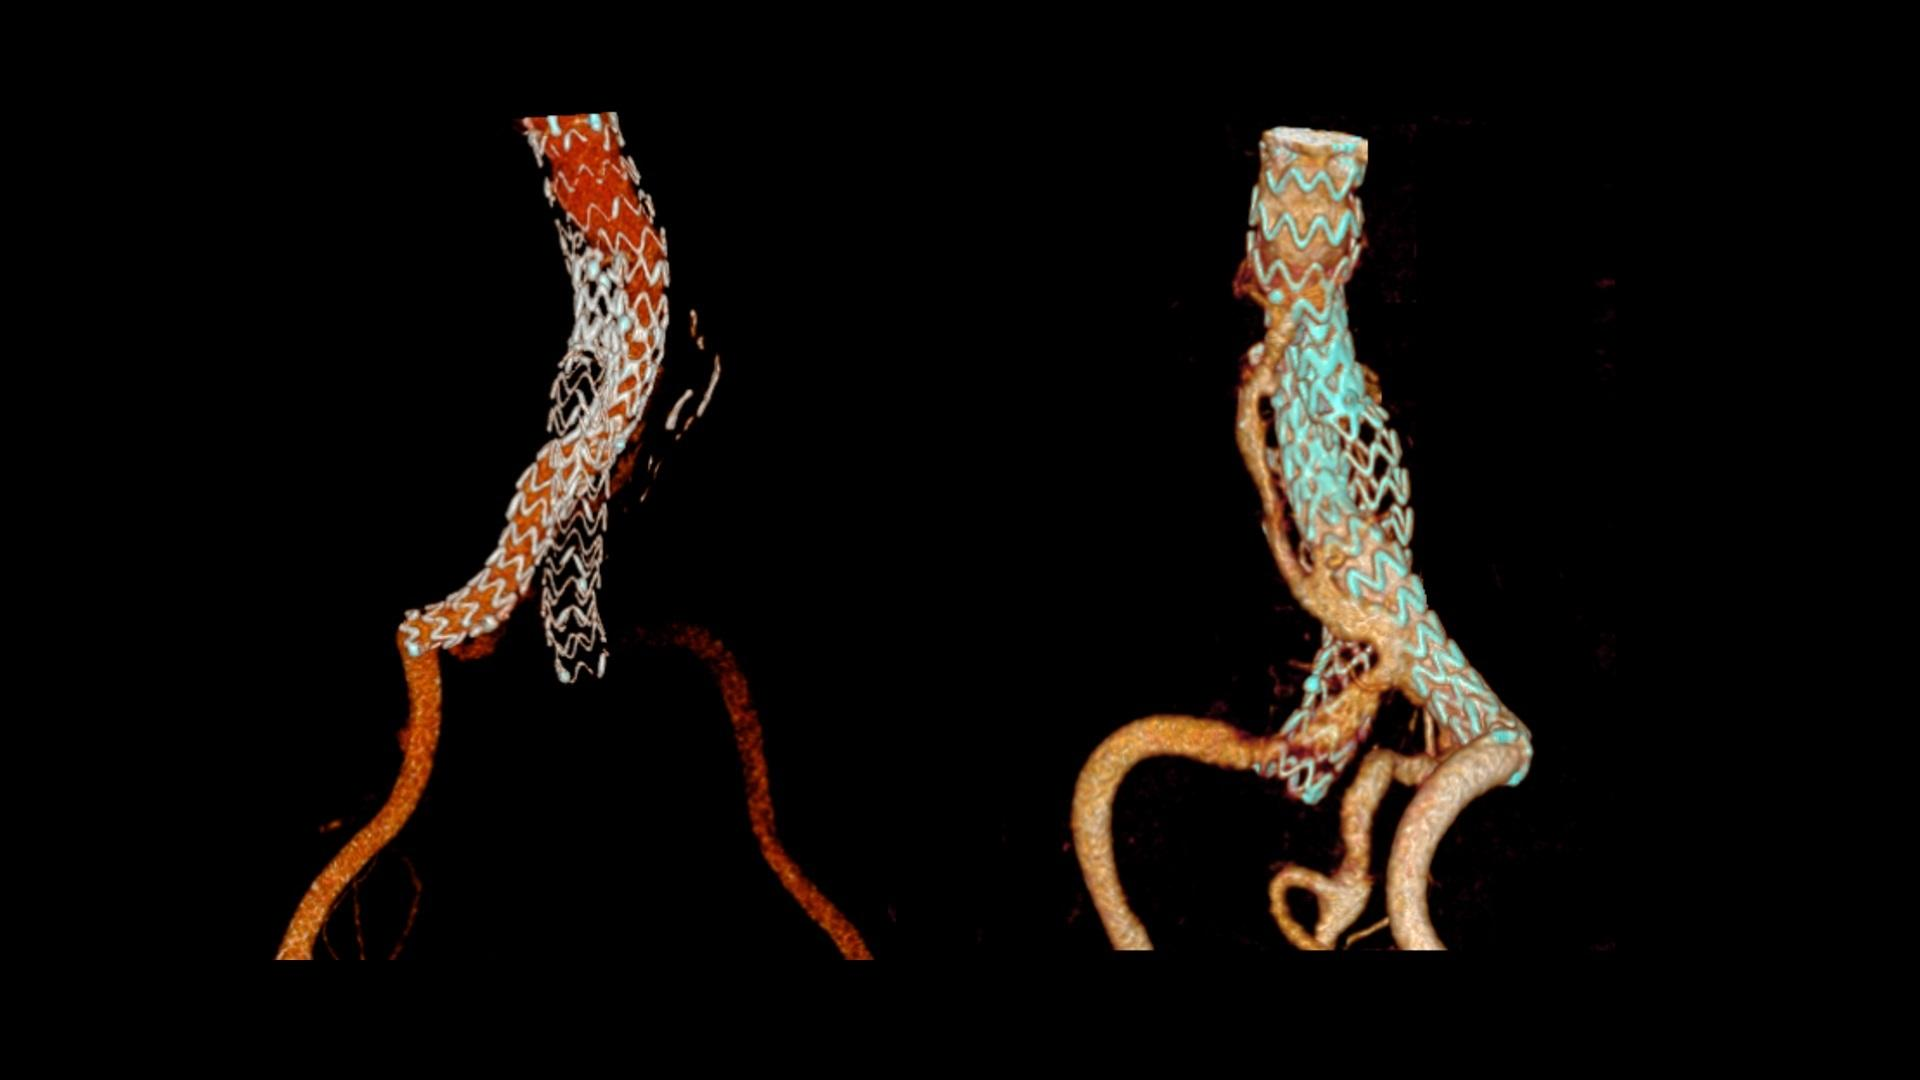 cVRT images show the twisted iliac prostheses. The left iliac prosthesis is occluded showing no blood flow within, and the left external iliac artery is fed by a type III endoleak.